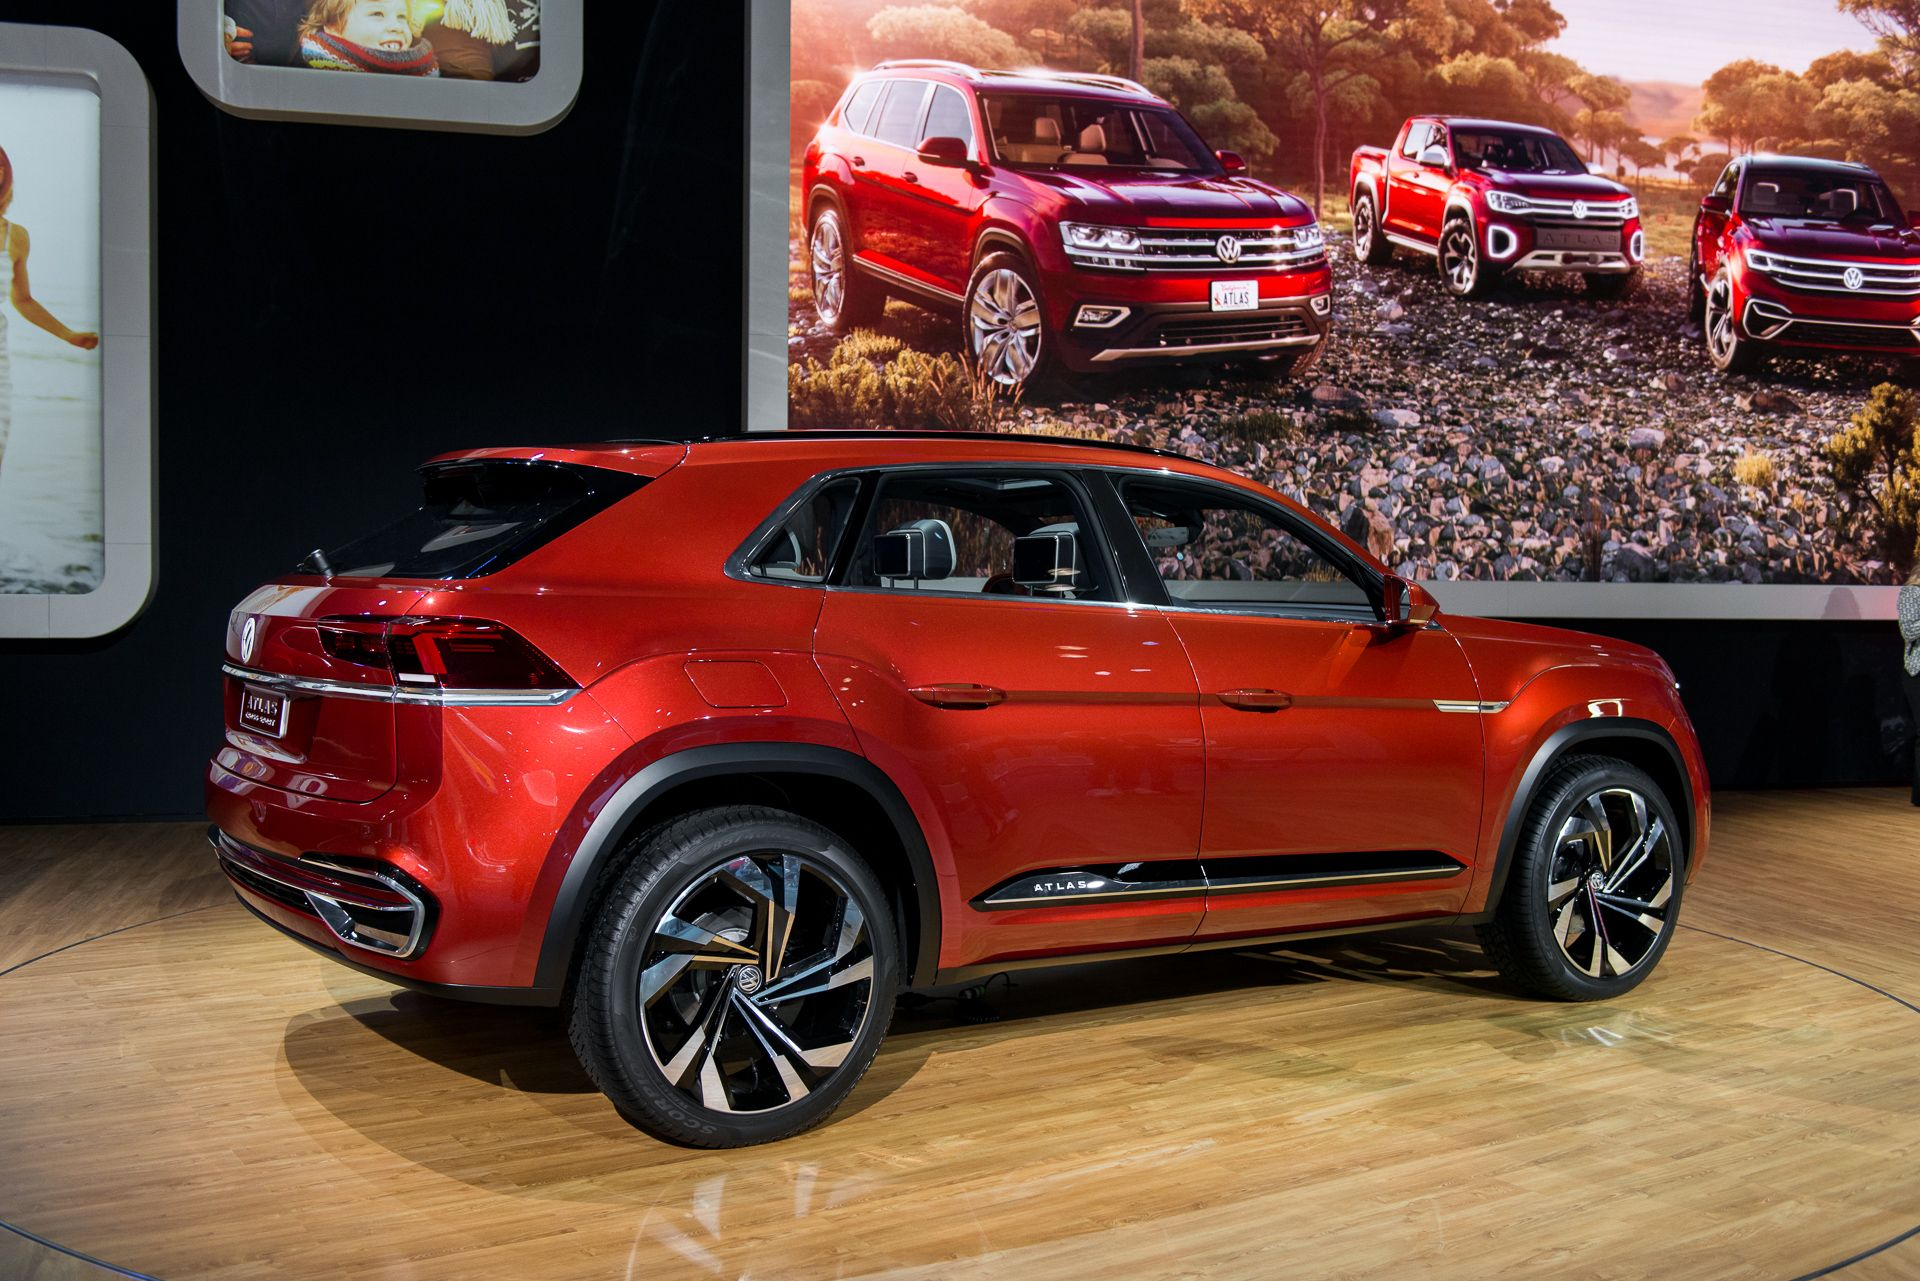 VW Atlas Cross Sport concept ditches 3rd row for sharper